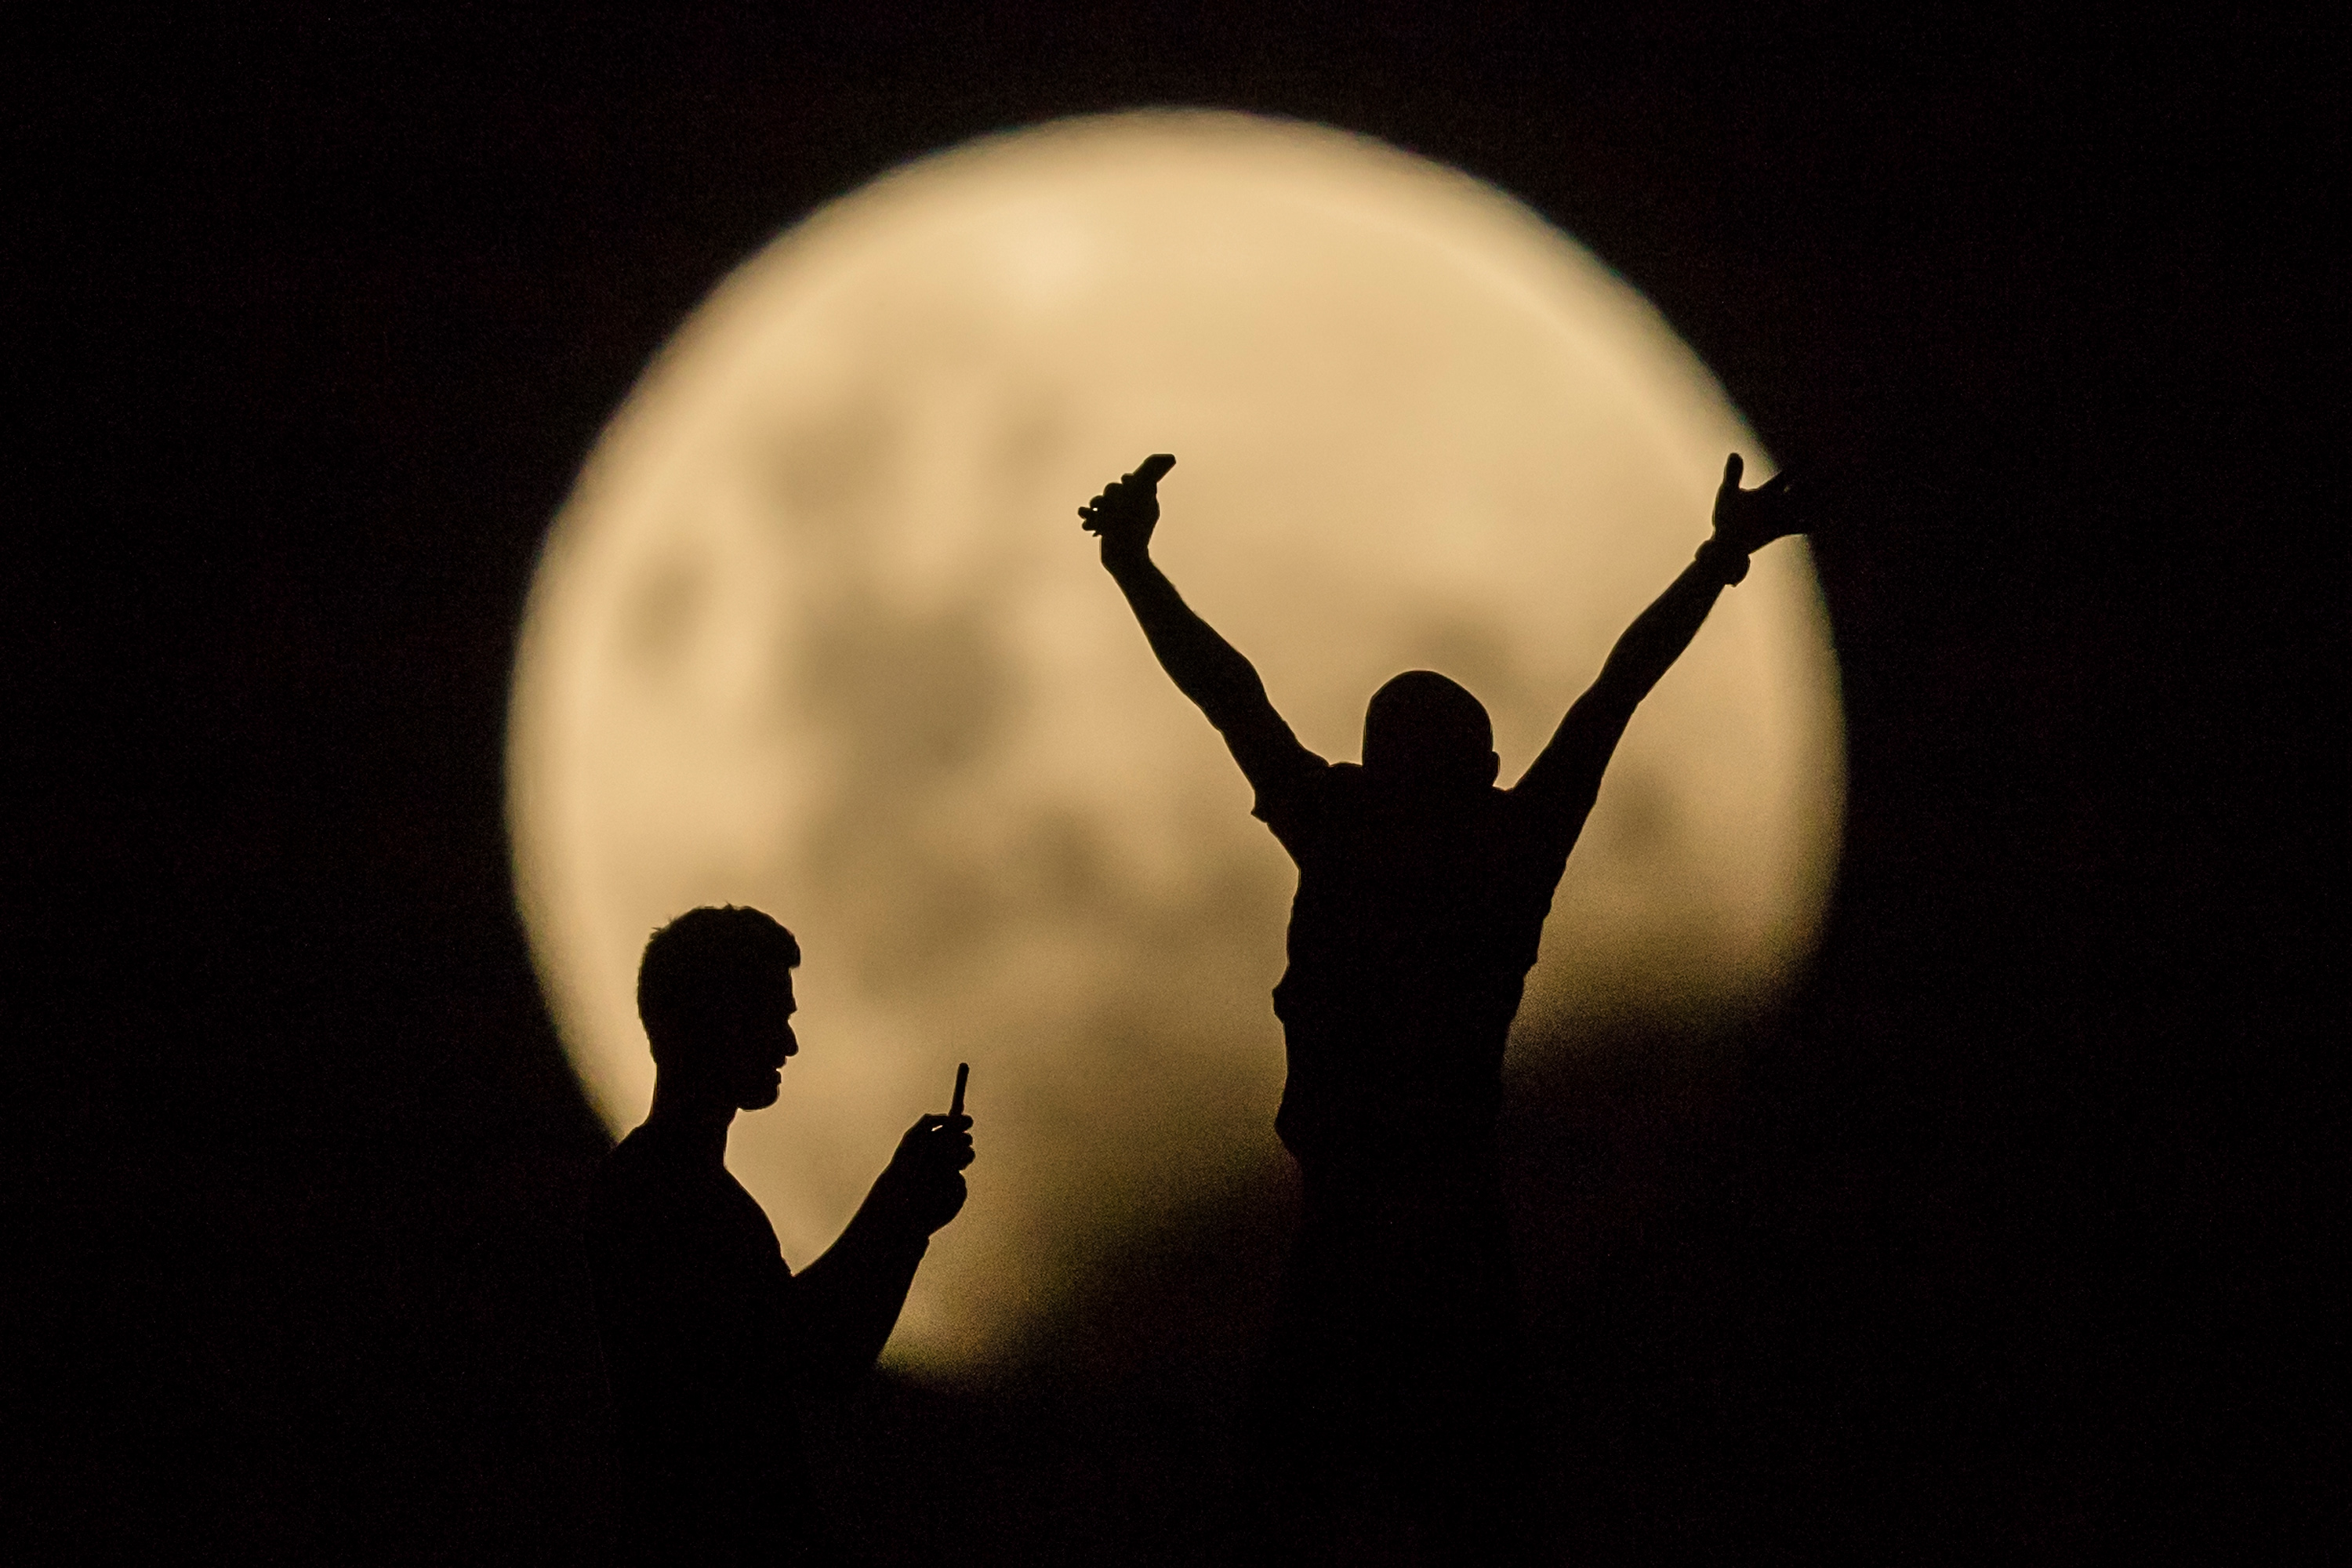 People take photos of the Super moon in Lancelin, Australia, on Jan. 31, 2018.